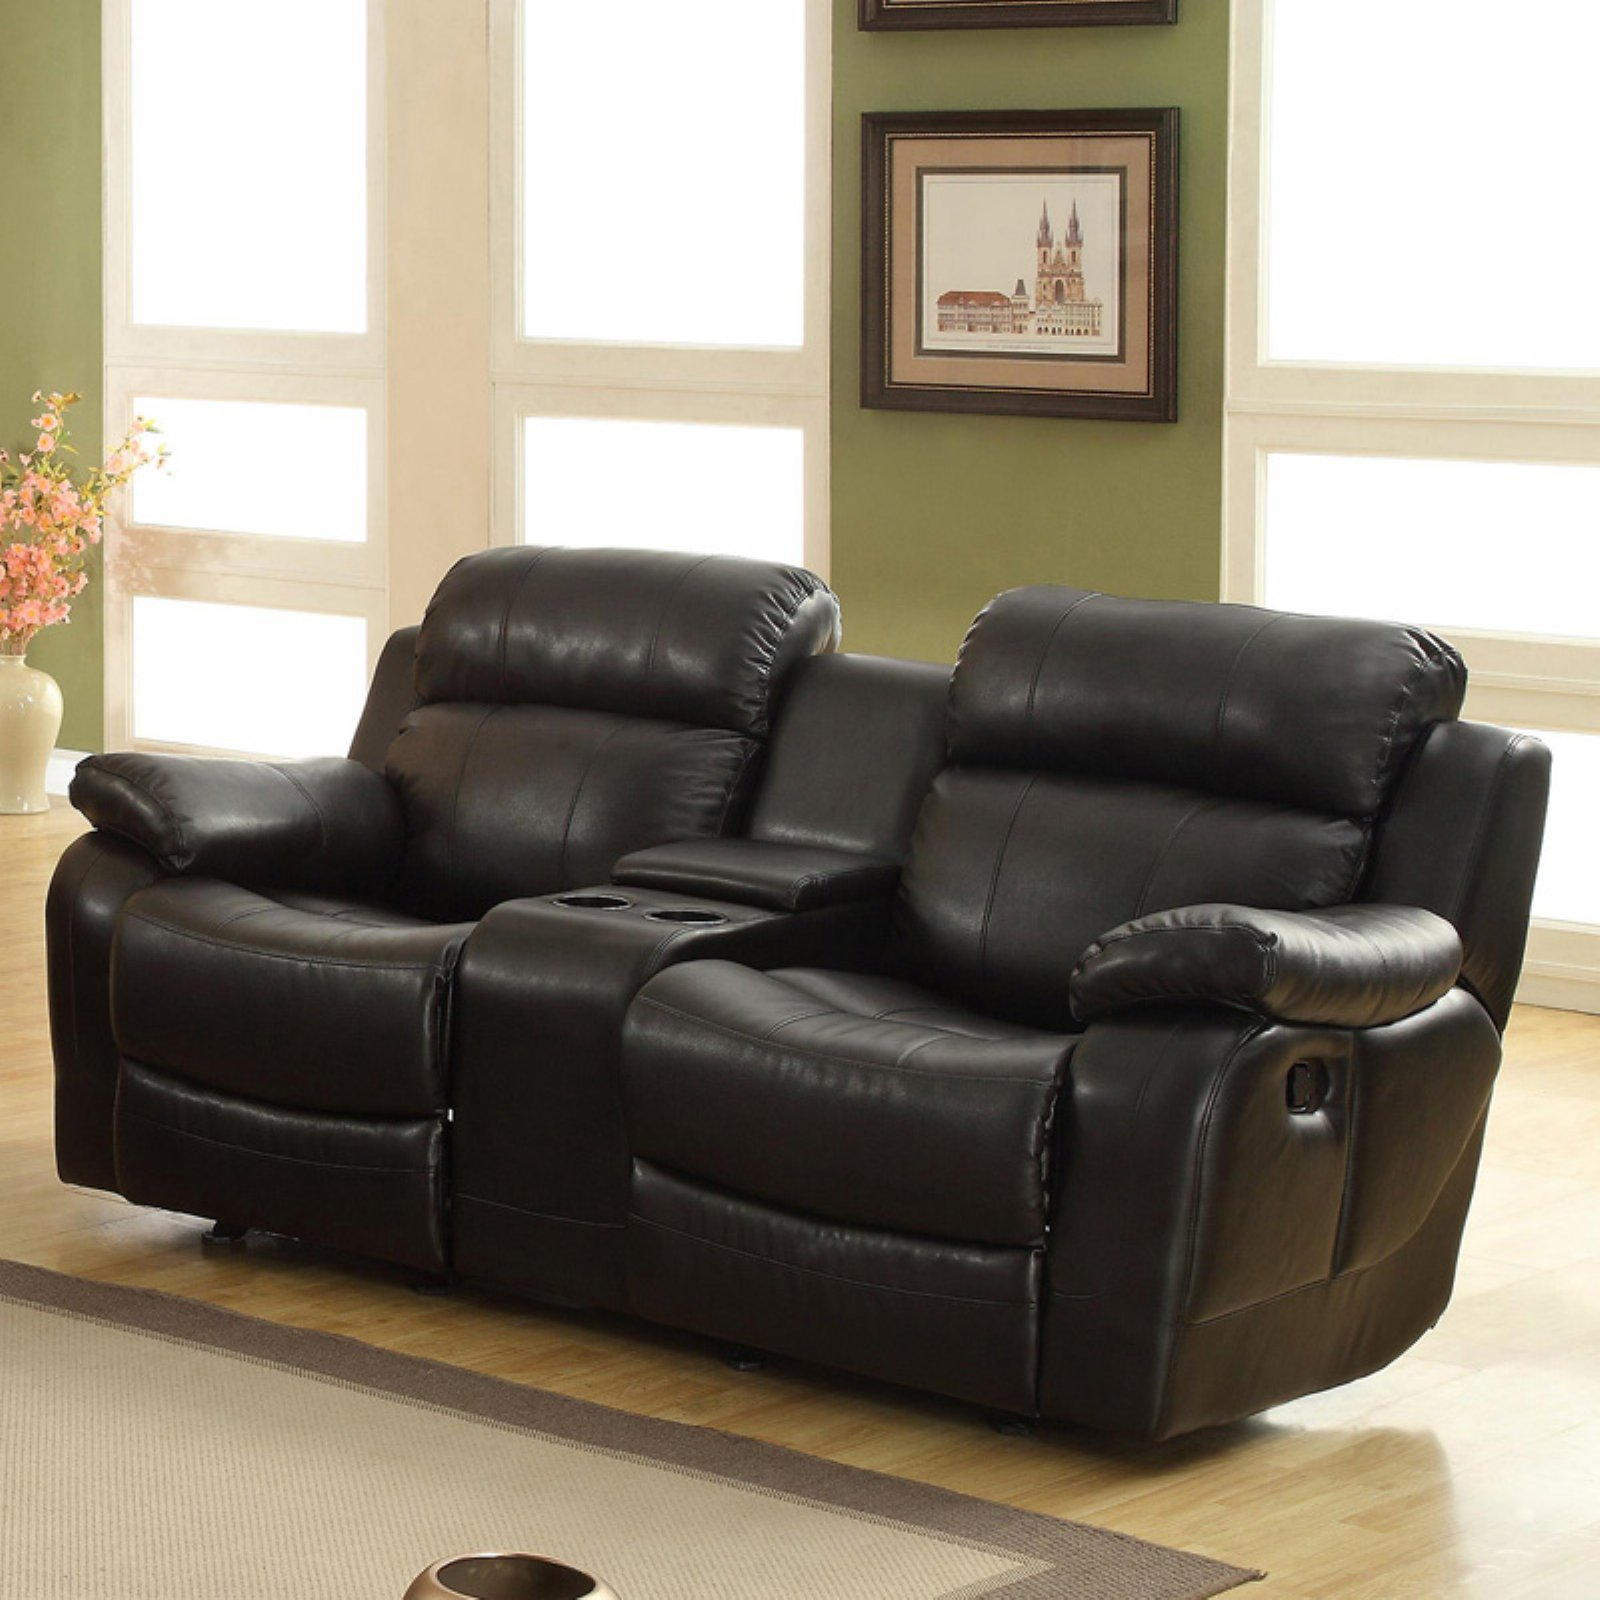 weston home darrin leather reclining loveseat with console - black xaadxdr